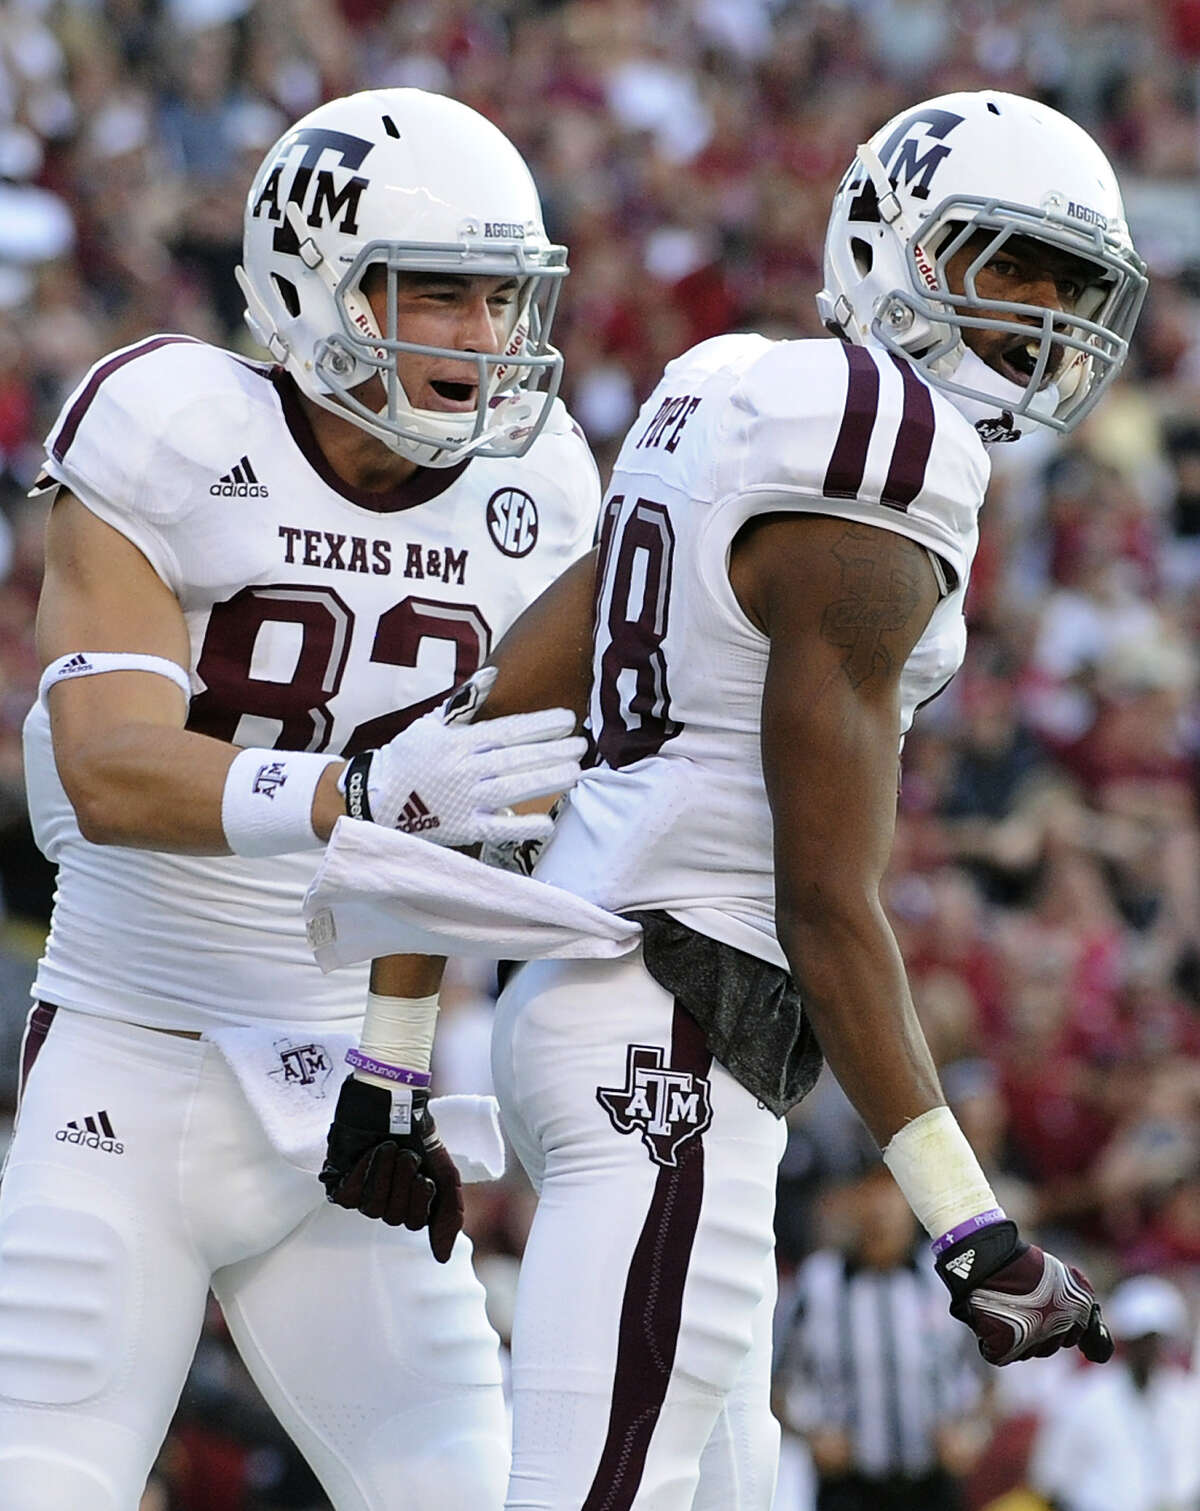 Texas A&M wide receiver Edward Pope (18) celebrates with teammate Boone Niederhofer (82) after scoring a touchdown against South Carolina during the first half of an NCAA college football game on Thursday, Aug. 28, 2014, in Columbia, South Carolina.